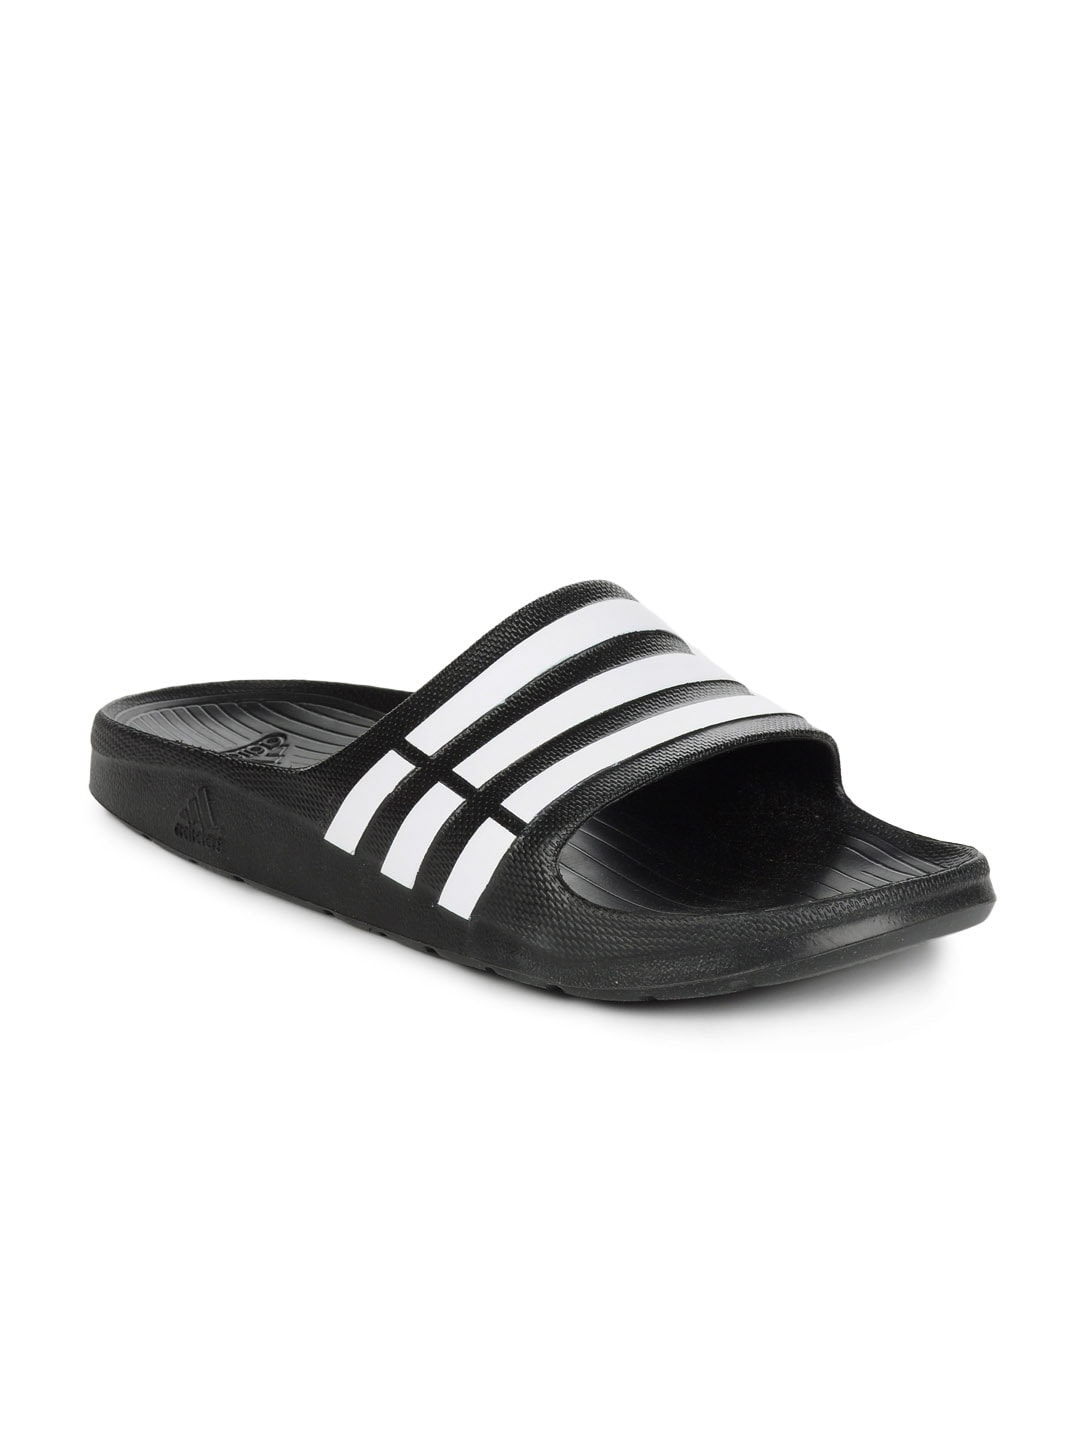 6ad938840dc4 Adidas Duramo Slide Black Flip Flops for Men online in India at Best ...